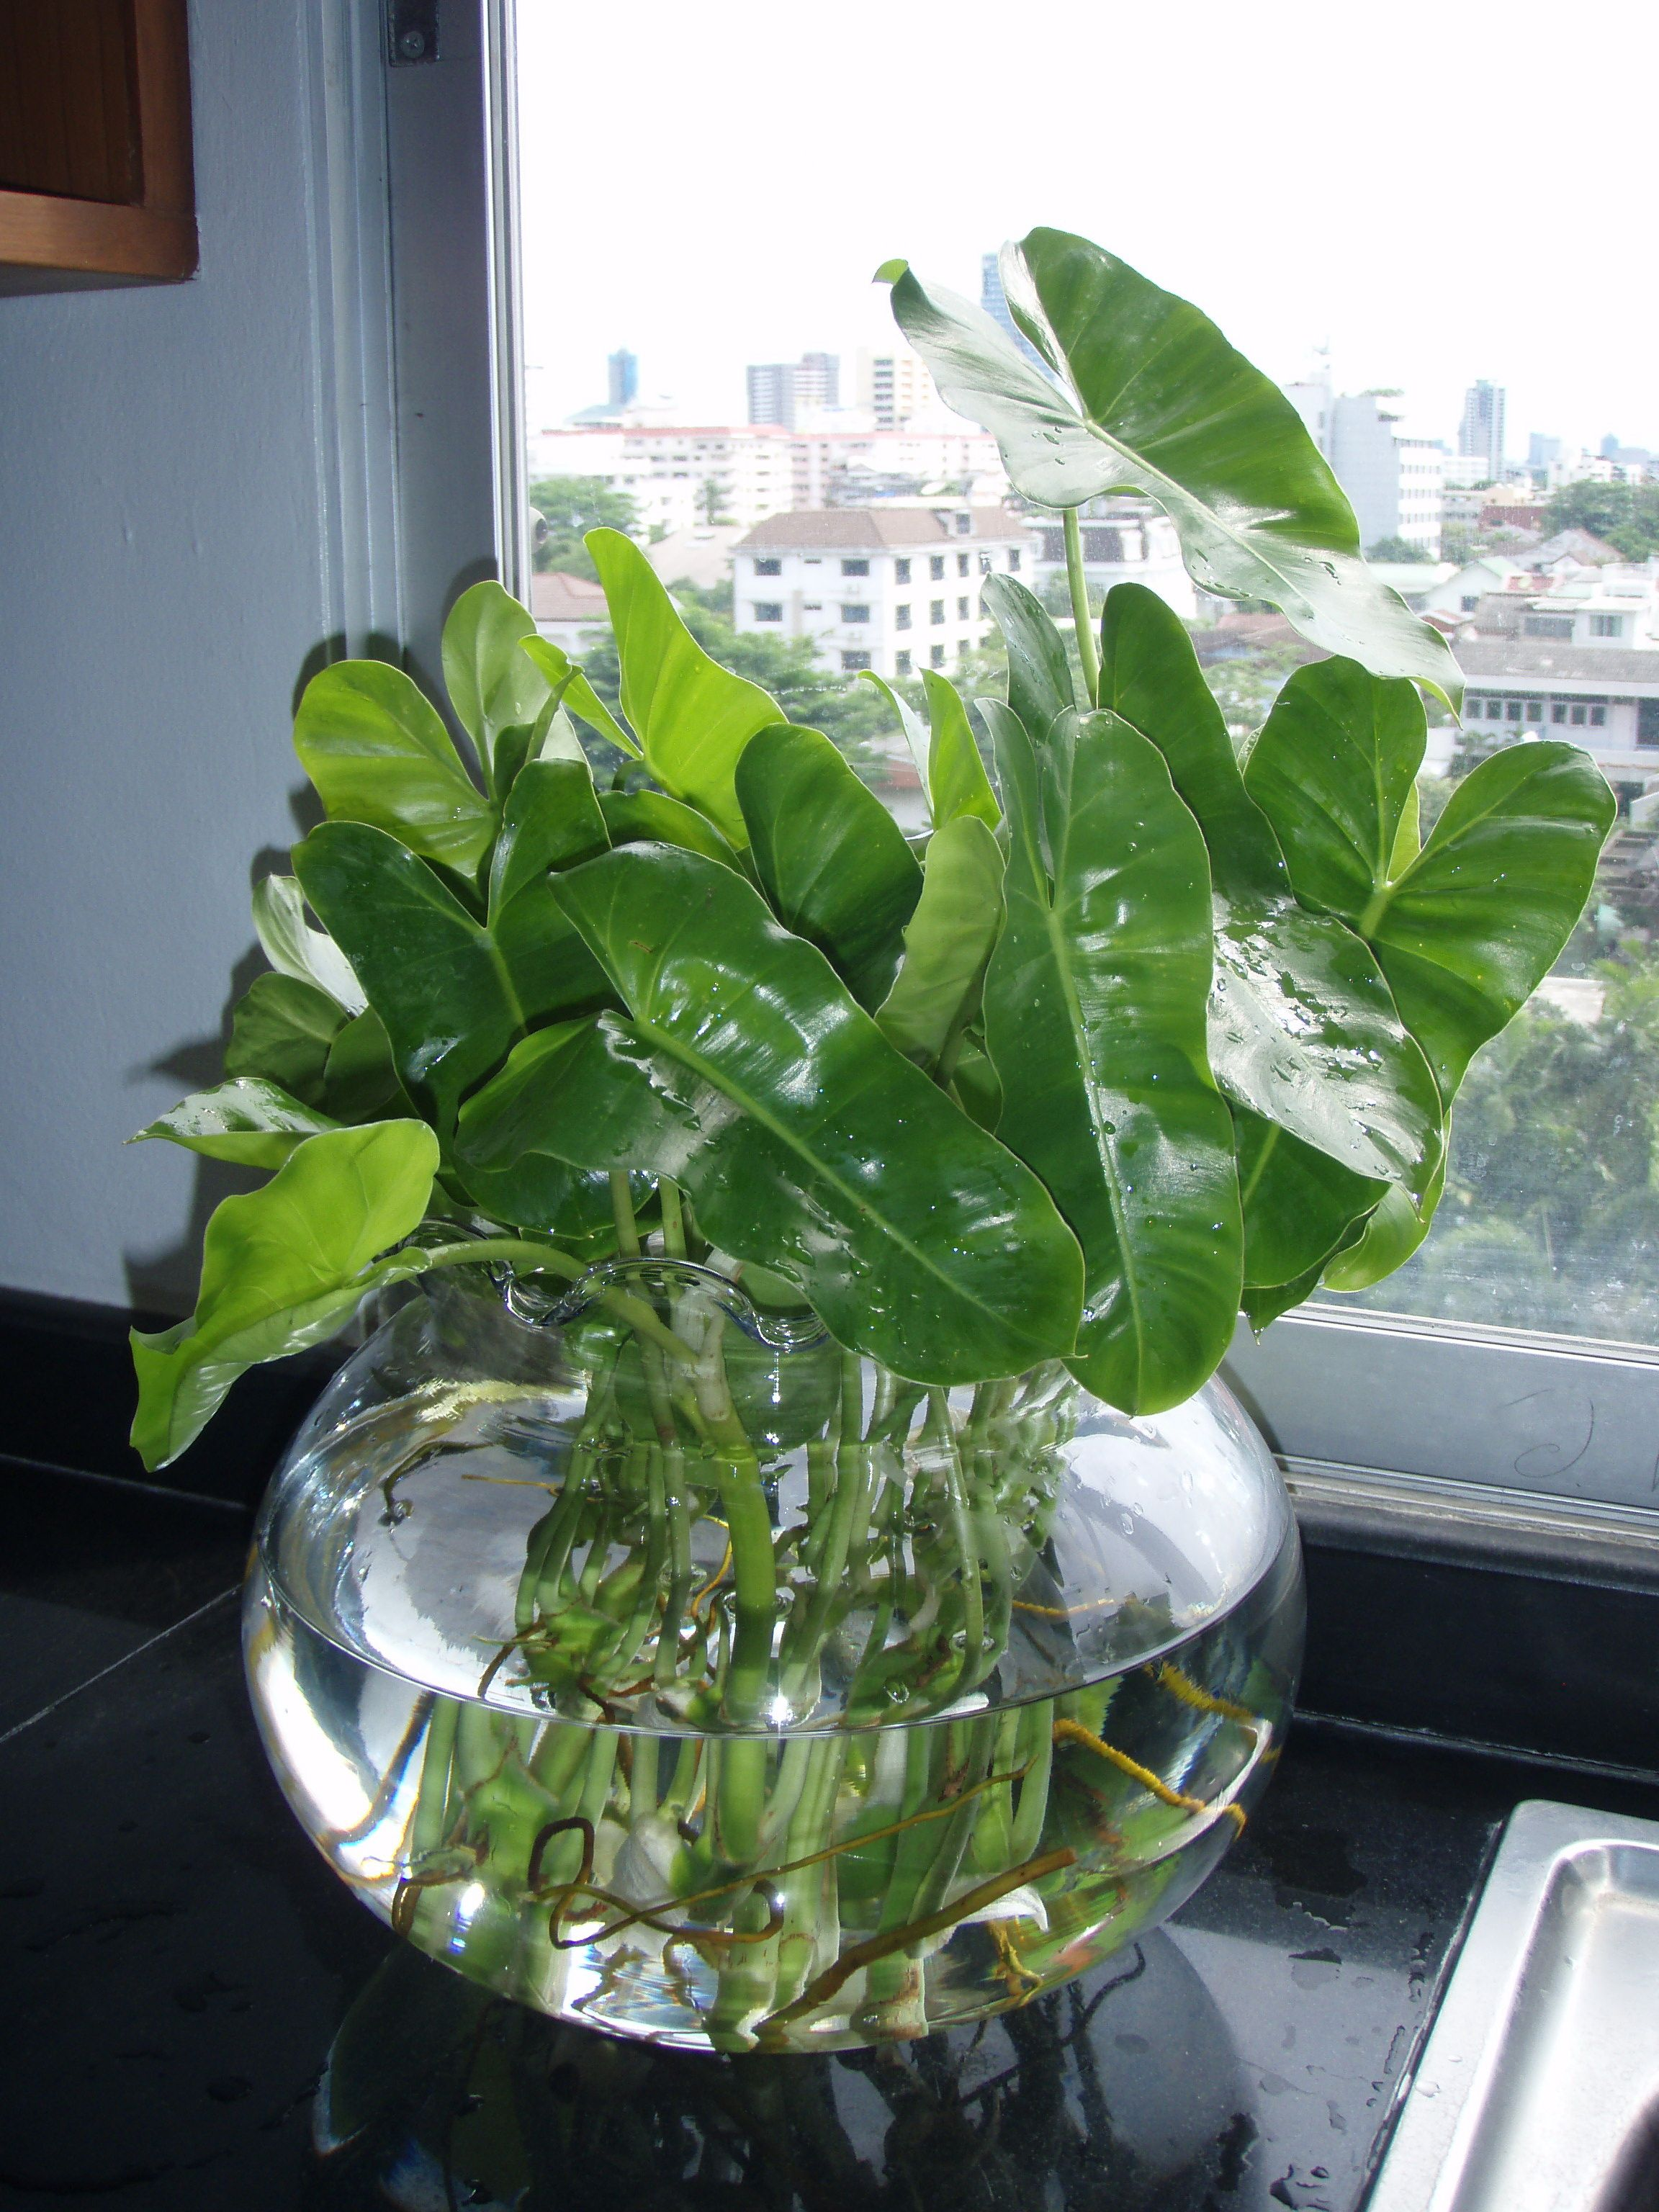 Merveilleux How To Grow Pothos (Devilu0027s Ivy) In Water | Houseplant, Thrift And Water